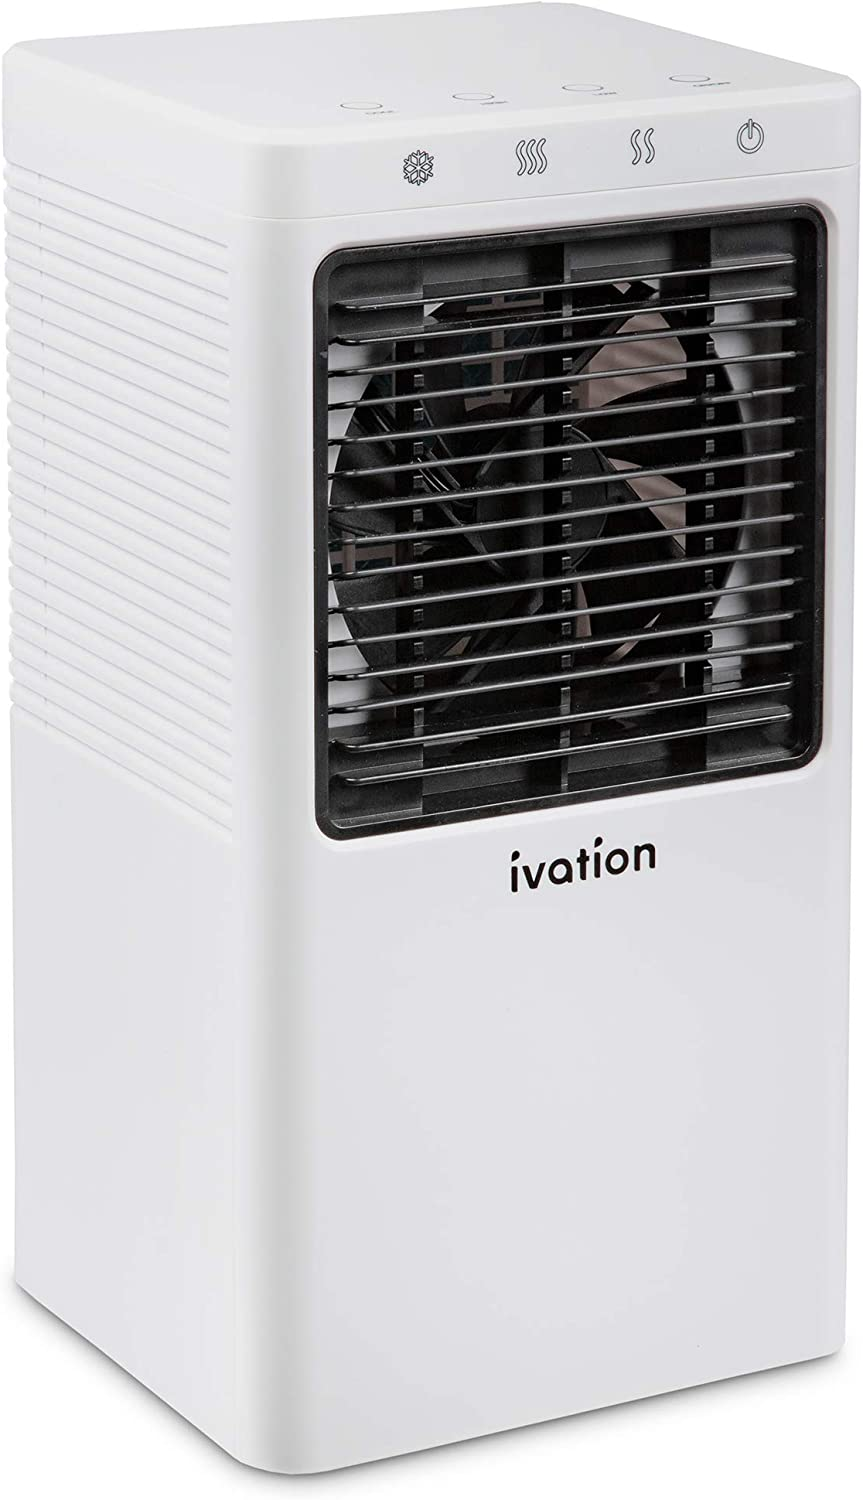 Ivation Personal Mini Air Cooler, Portable USB-Powered Desktop Evaporative Swamp Cooler Fan Humidifier with 2-Speed Fan, 5-Hour Cooling for Home, Office Desktop or Car Up to 21 Sq/Ft